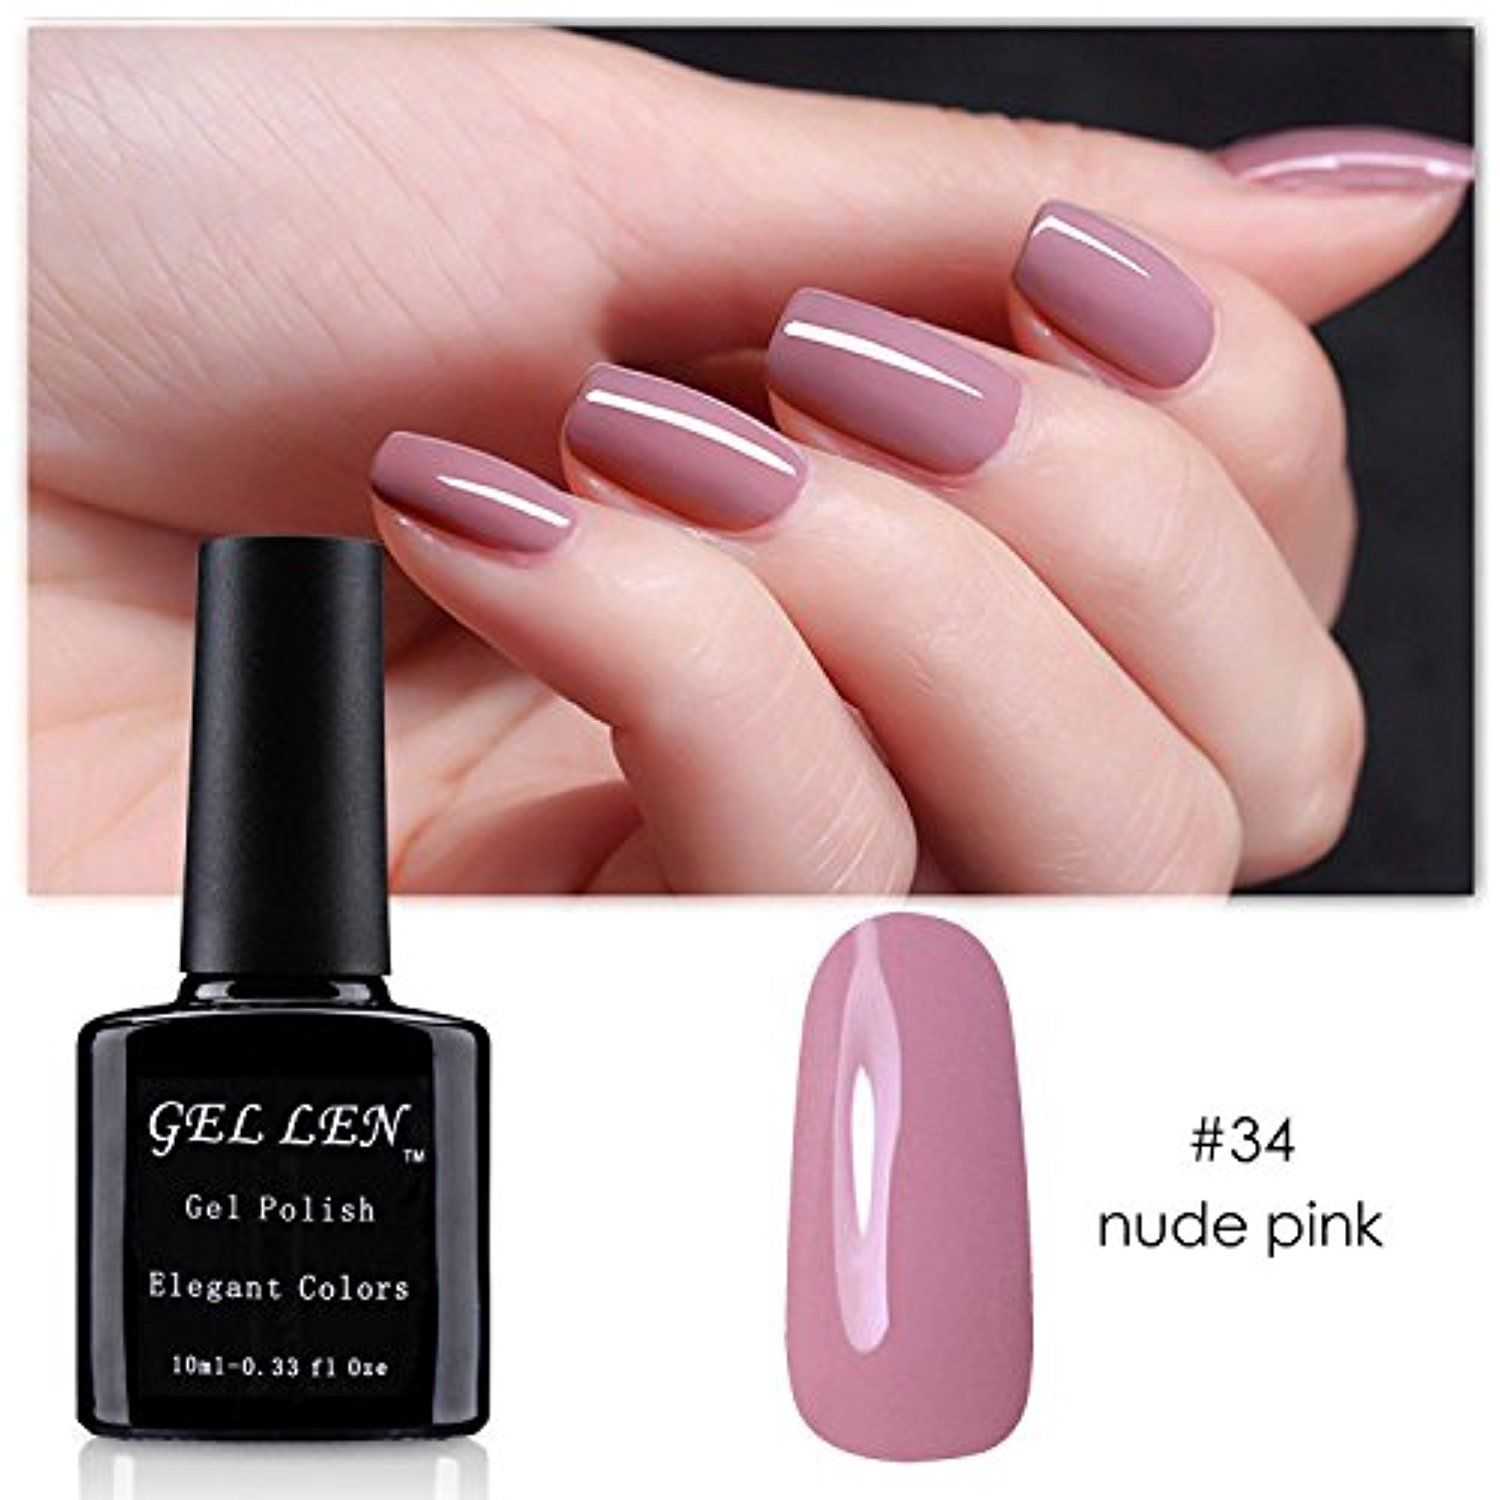 Gellen Best Sell 30 Colors Series Uv Gel Nail Polish 1pc 10ml Nail Art Color 034 Click Image To Review More D Nail Polish Uv Gel Nail Polish Gel Nail Polish